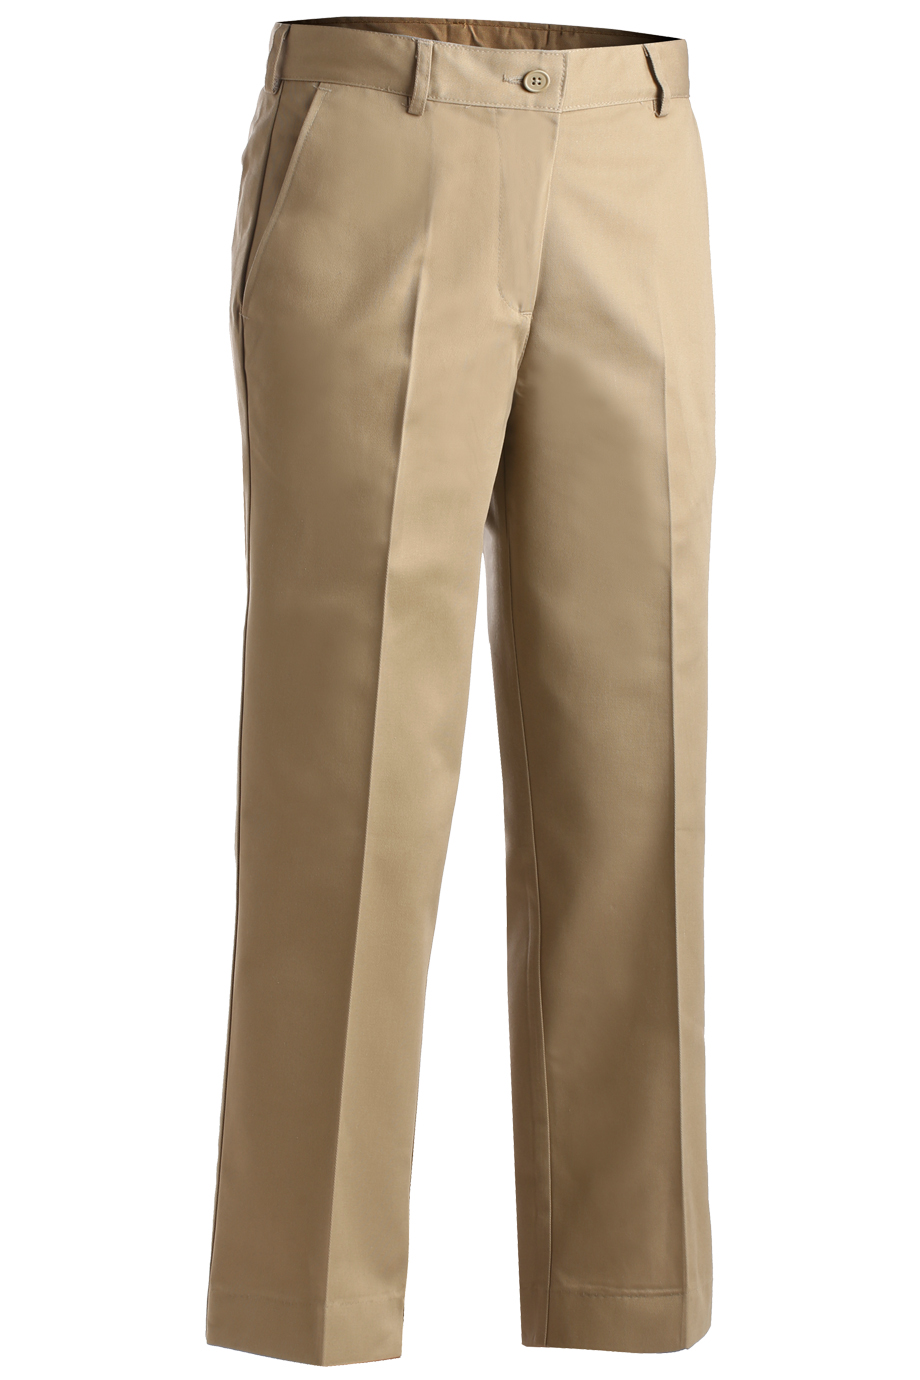 Ladies' Easy Fit Chino Flat Front Pant 8576